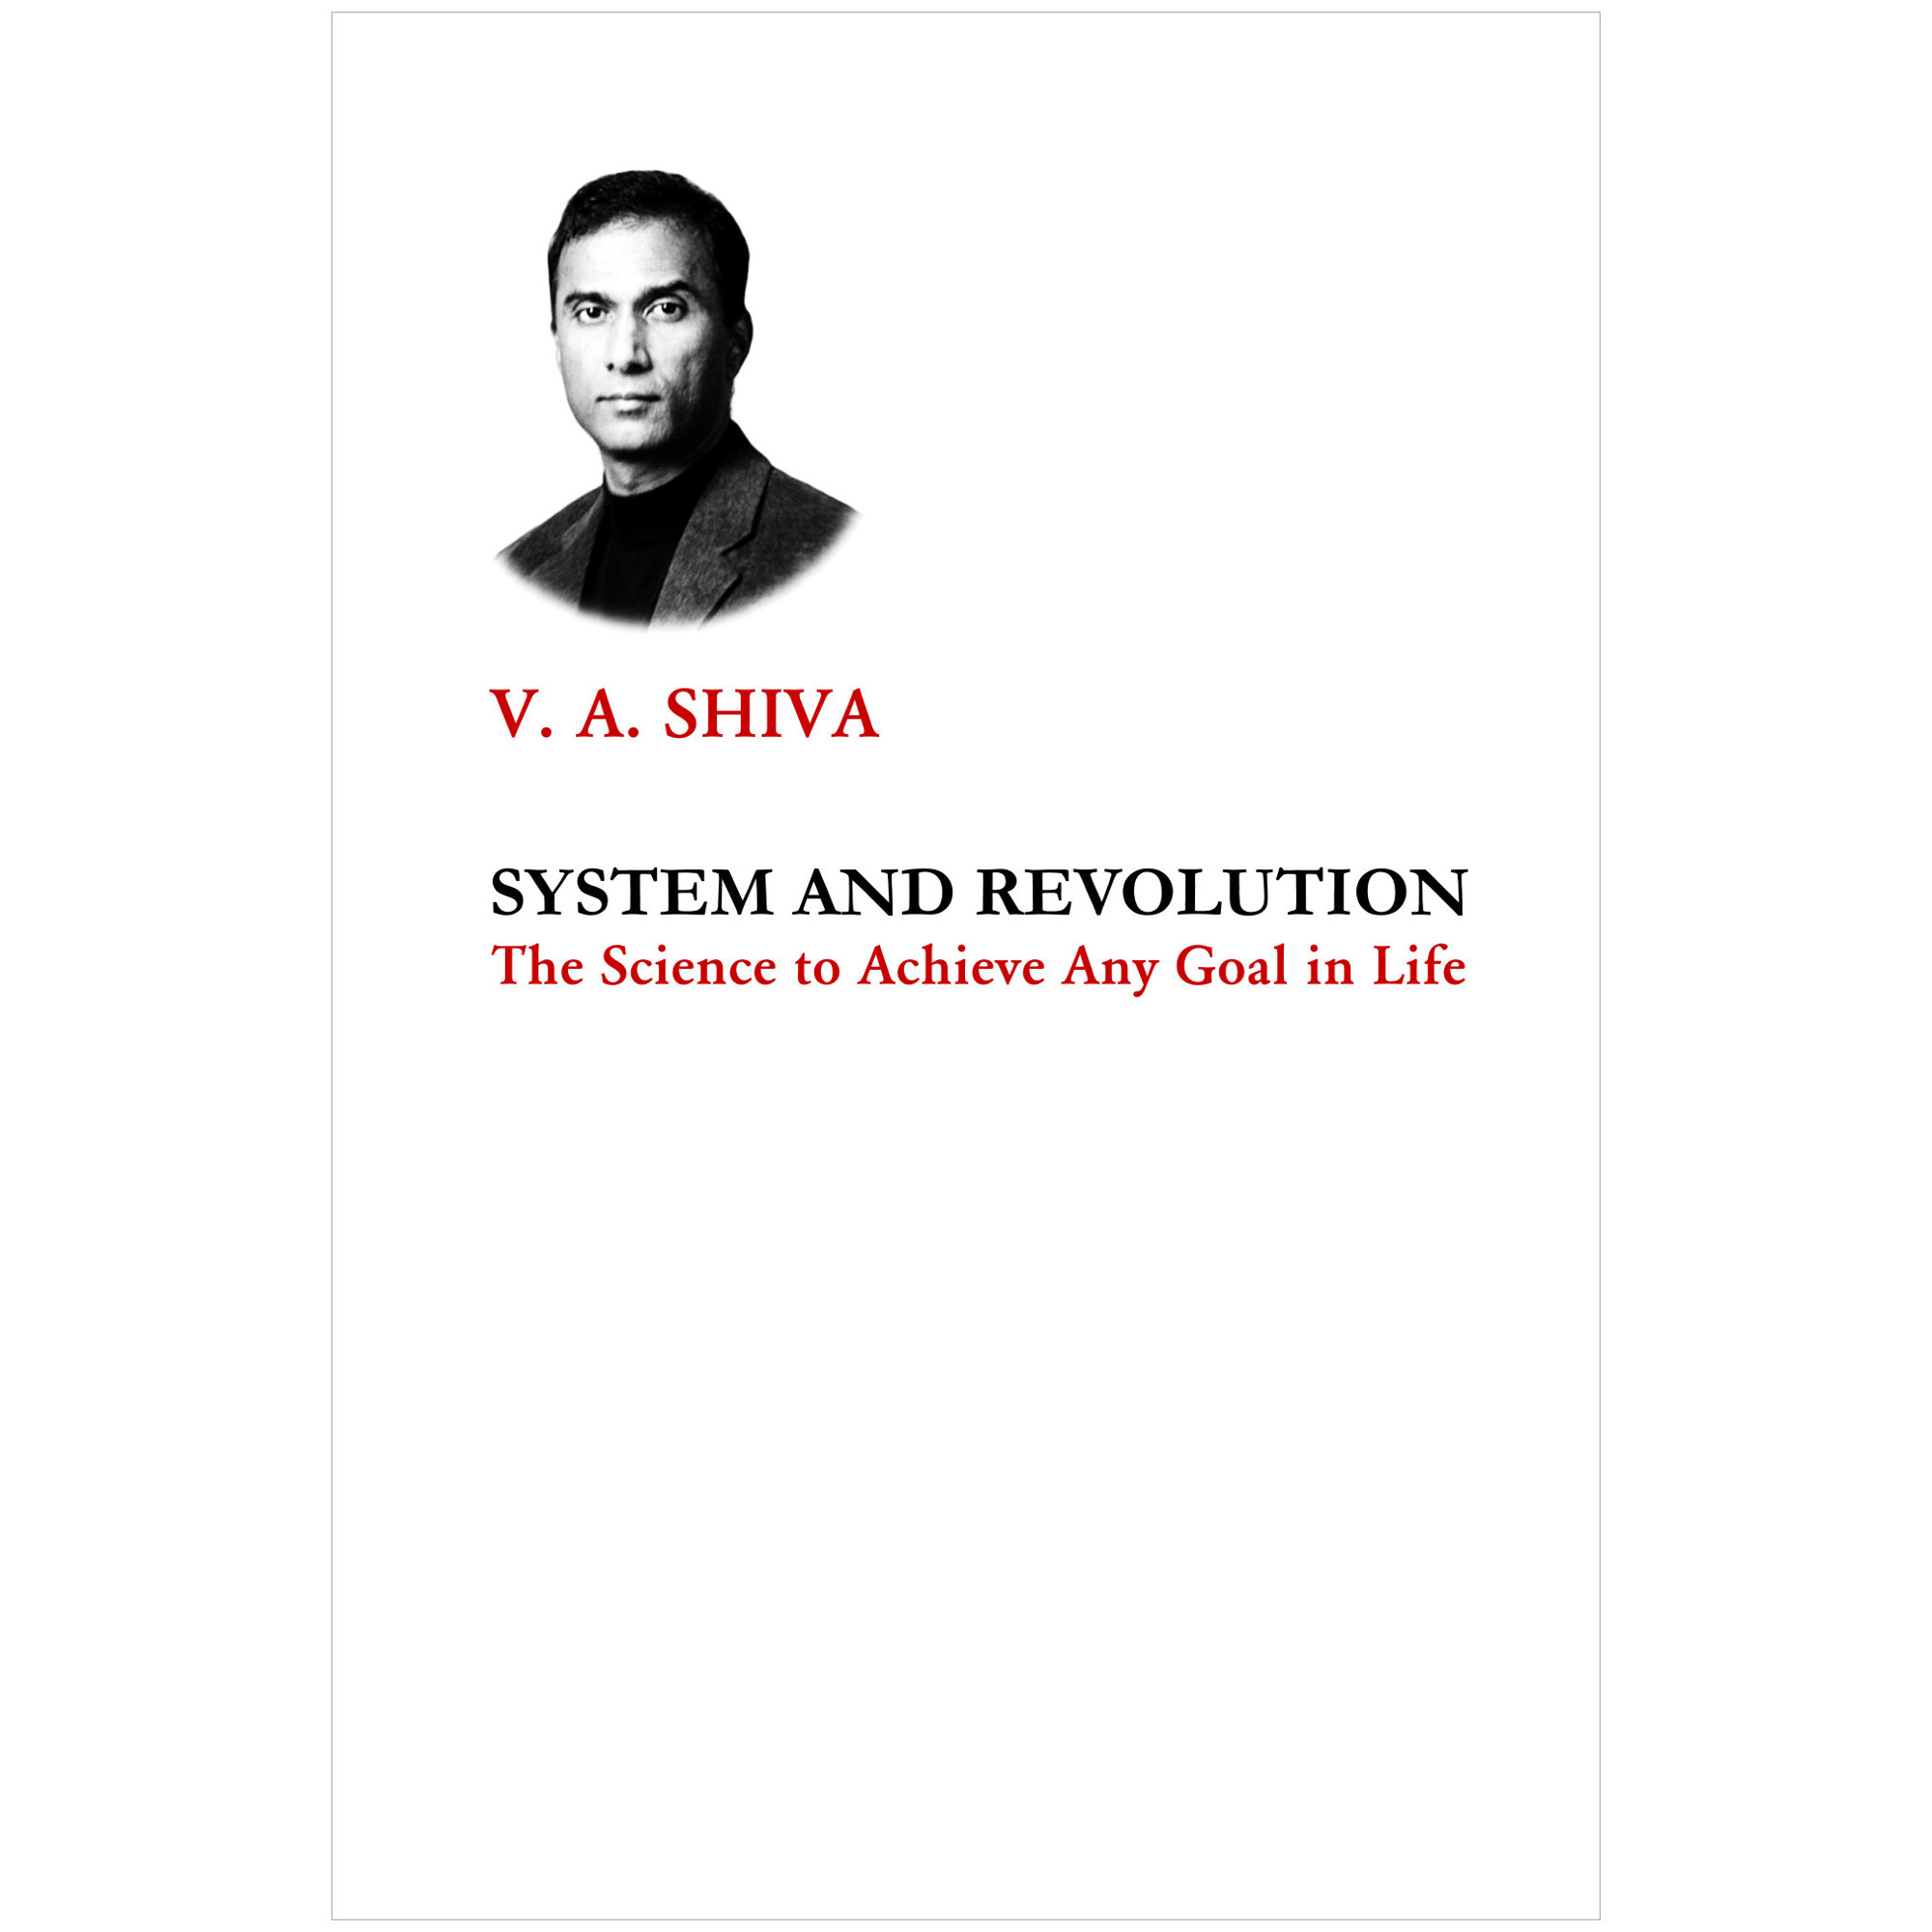 The System and Revolution